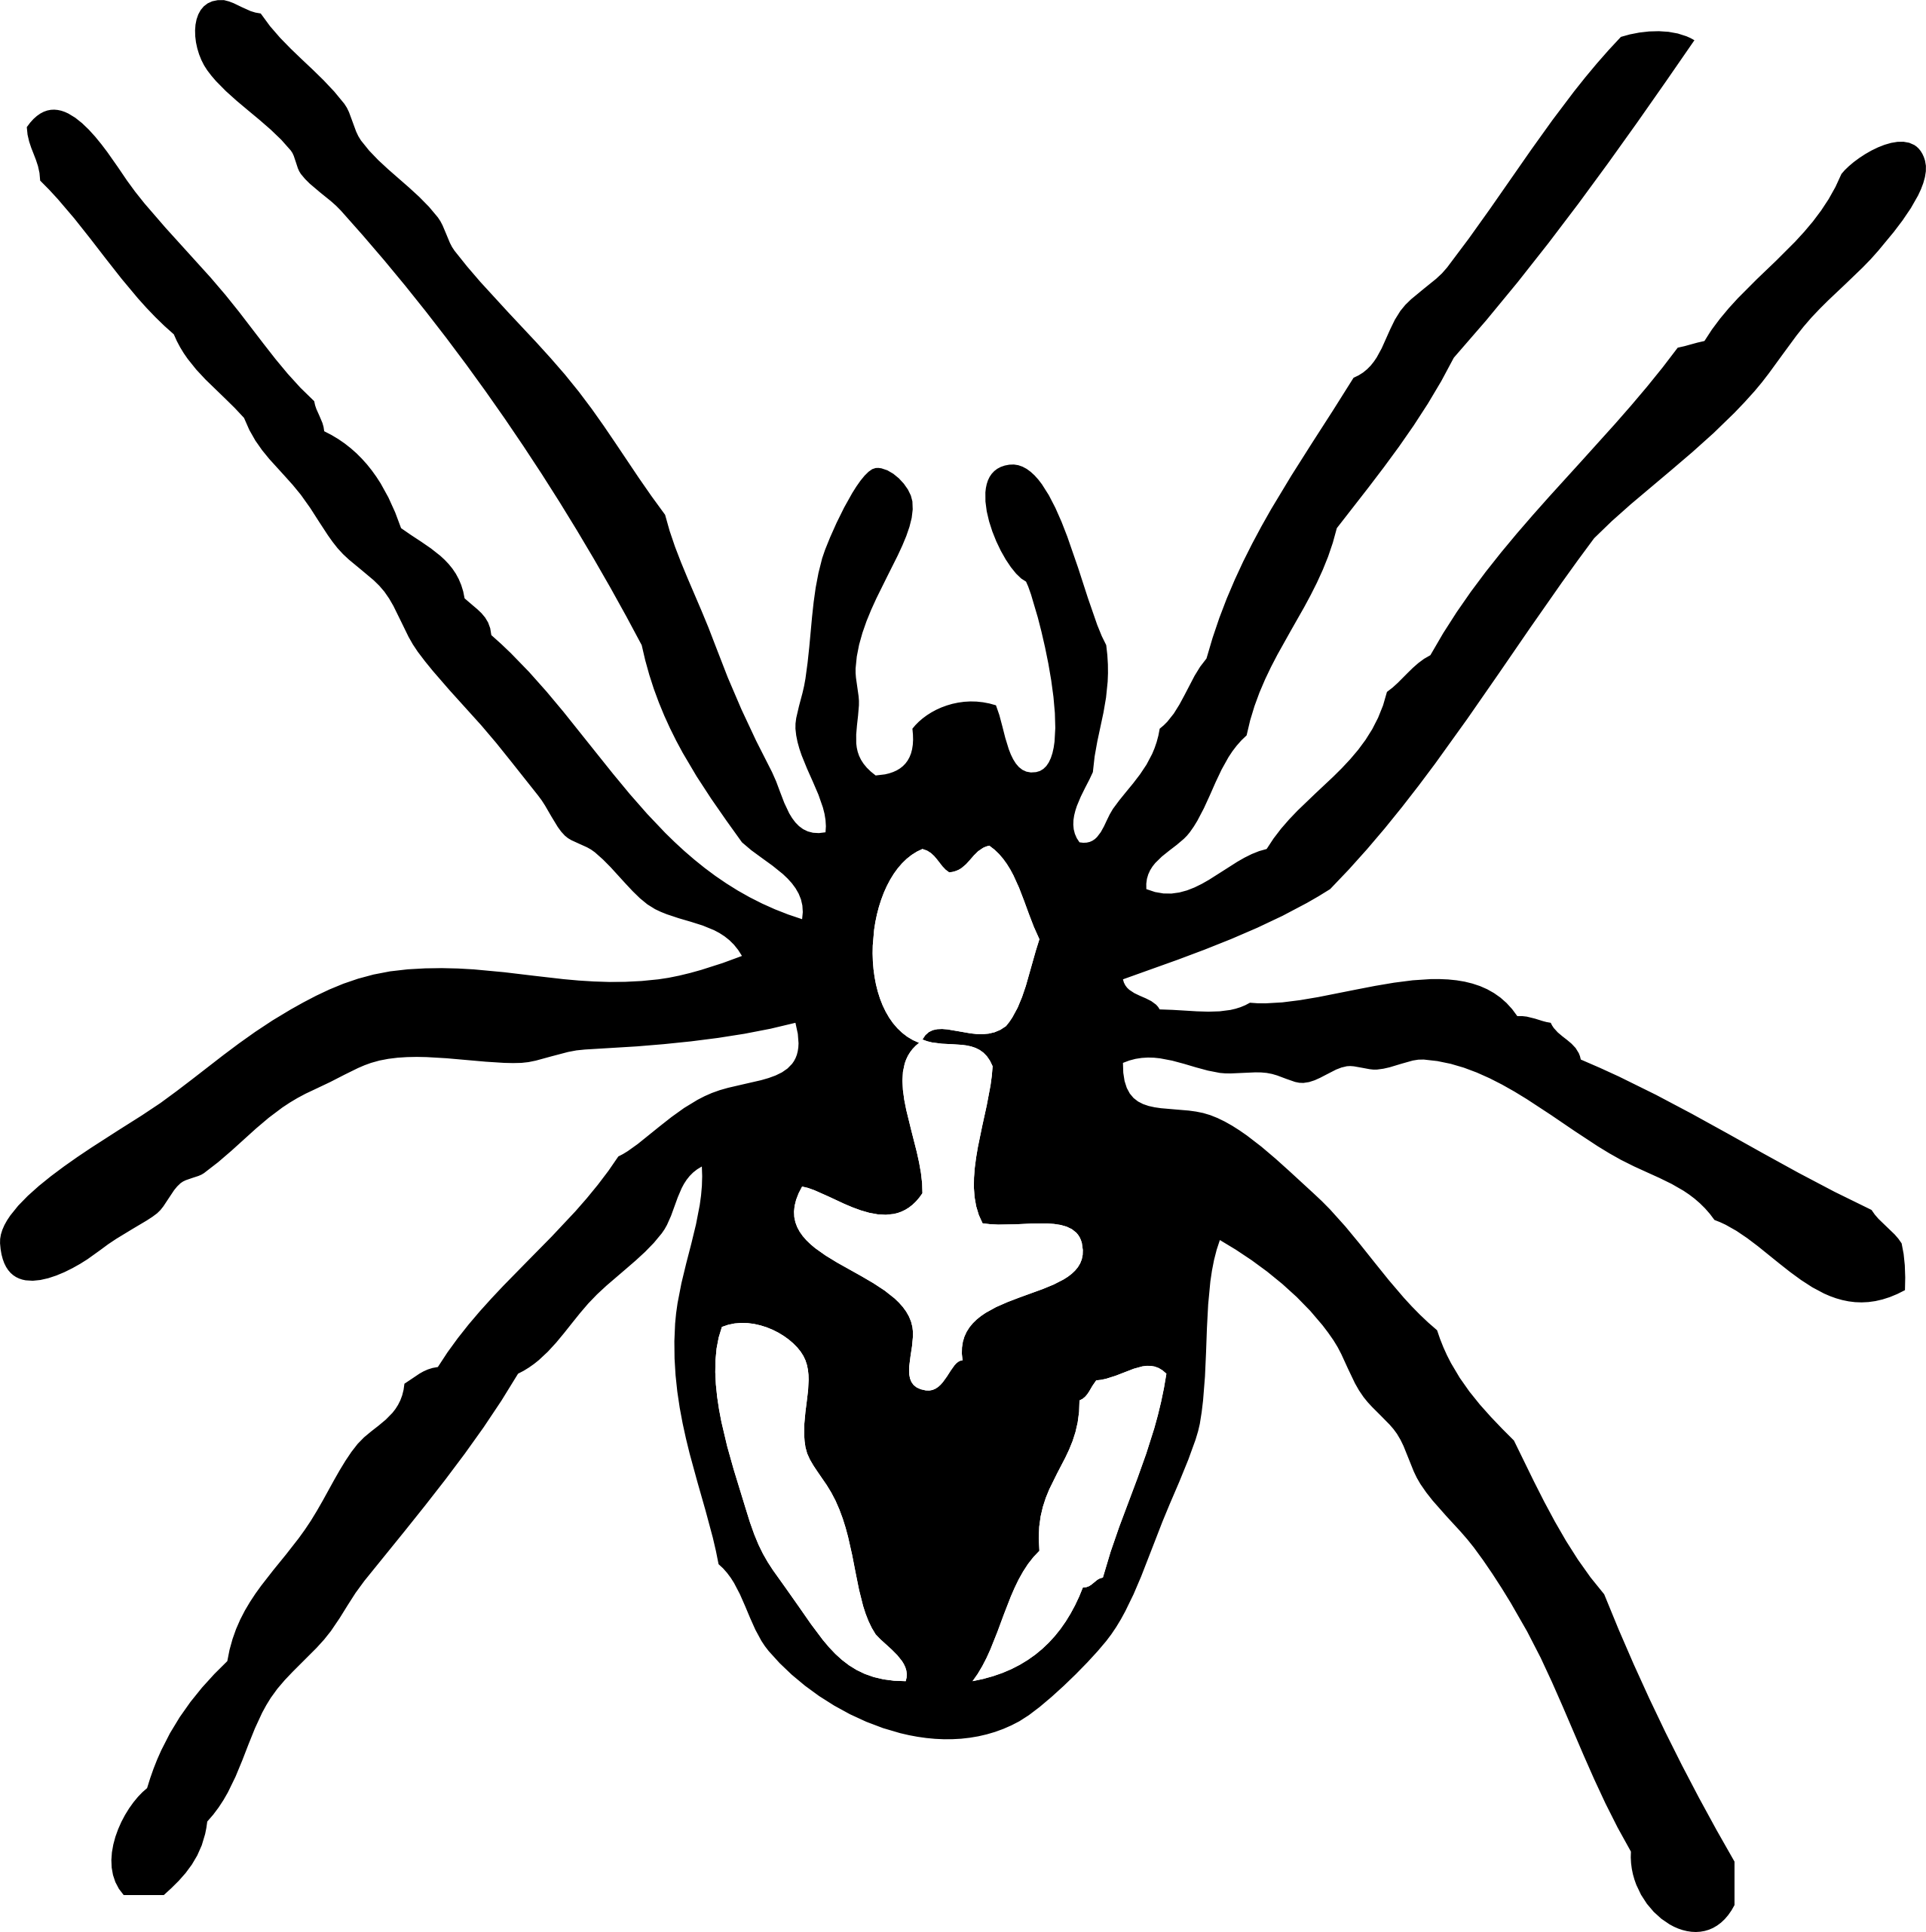 Clip Art Spiders - Cliparts.co